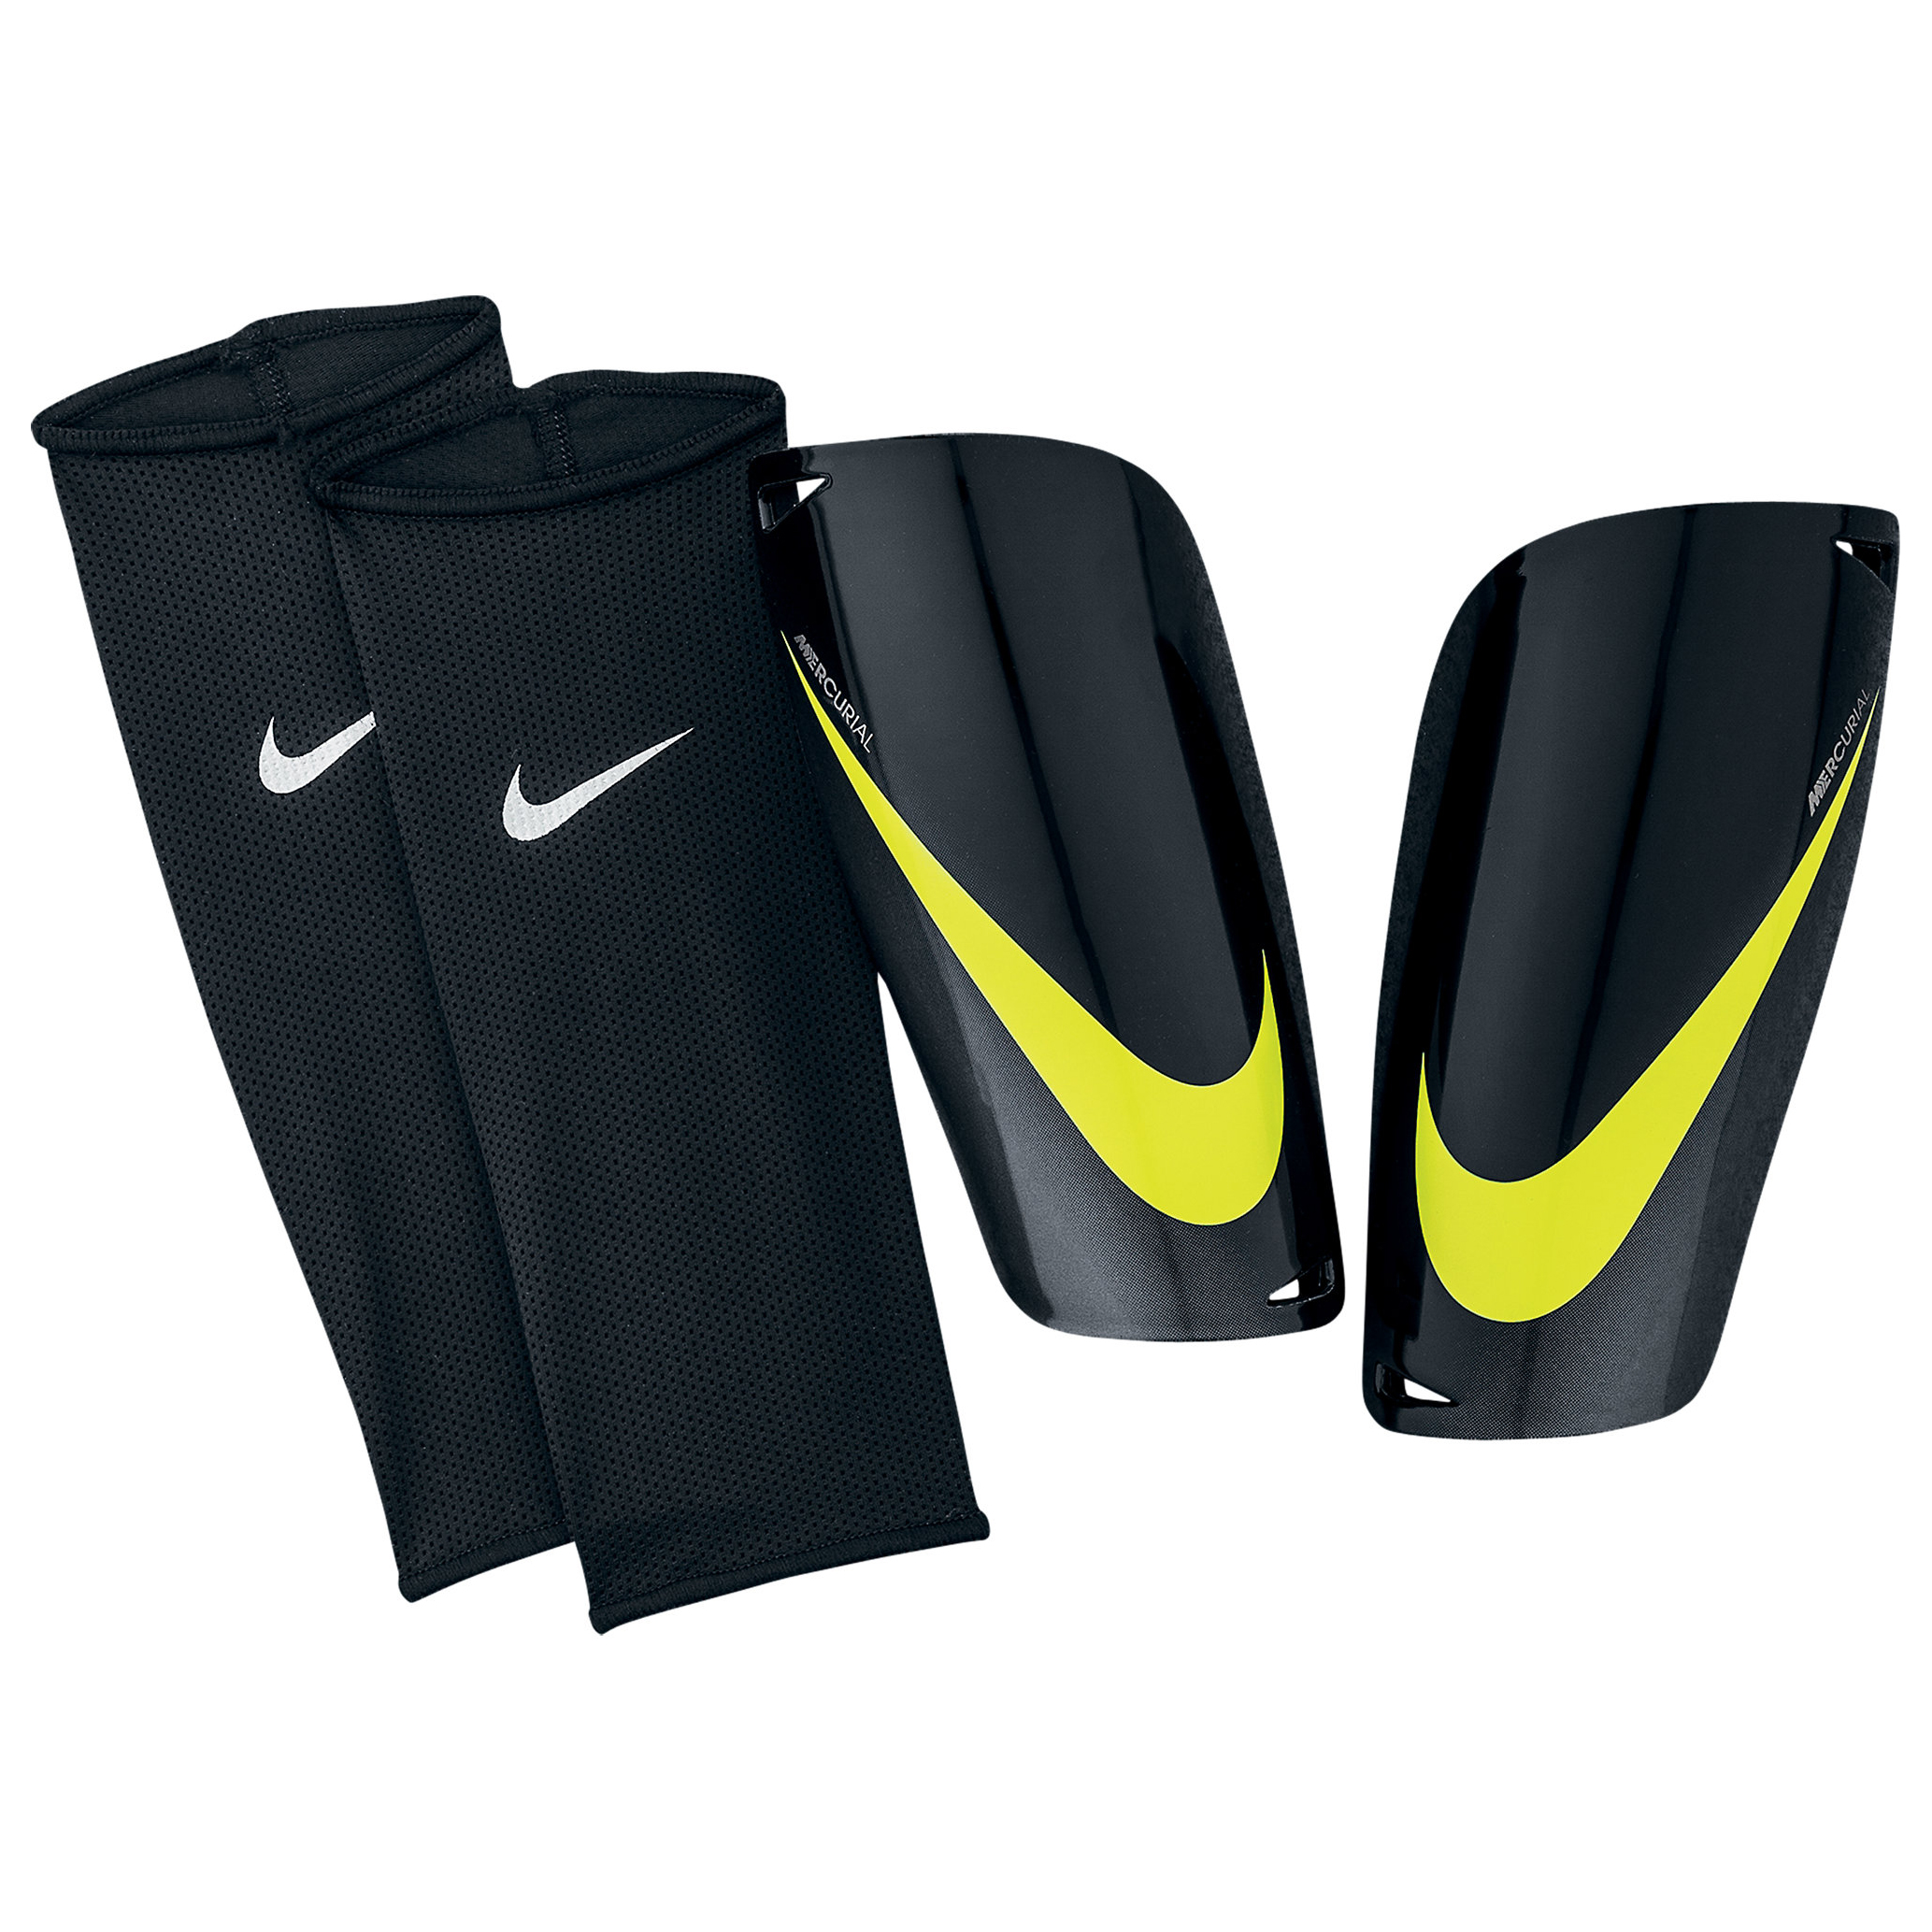 Nike Mercurial Lite Shinpads - Black/Grey/Yellow